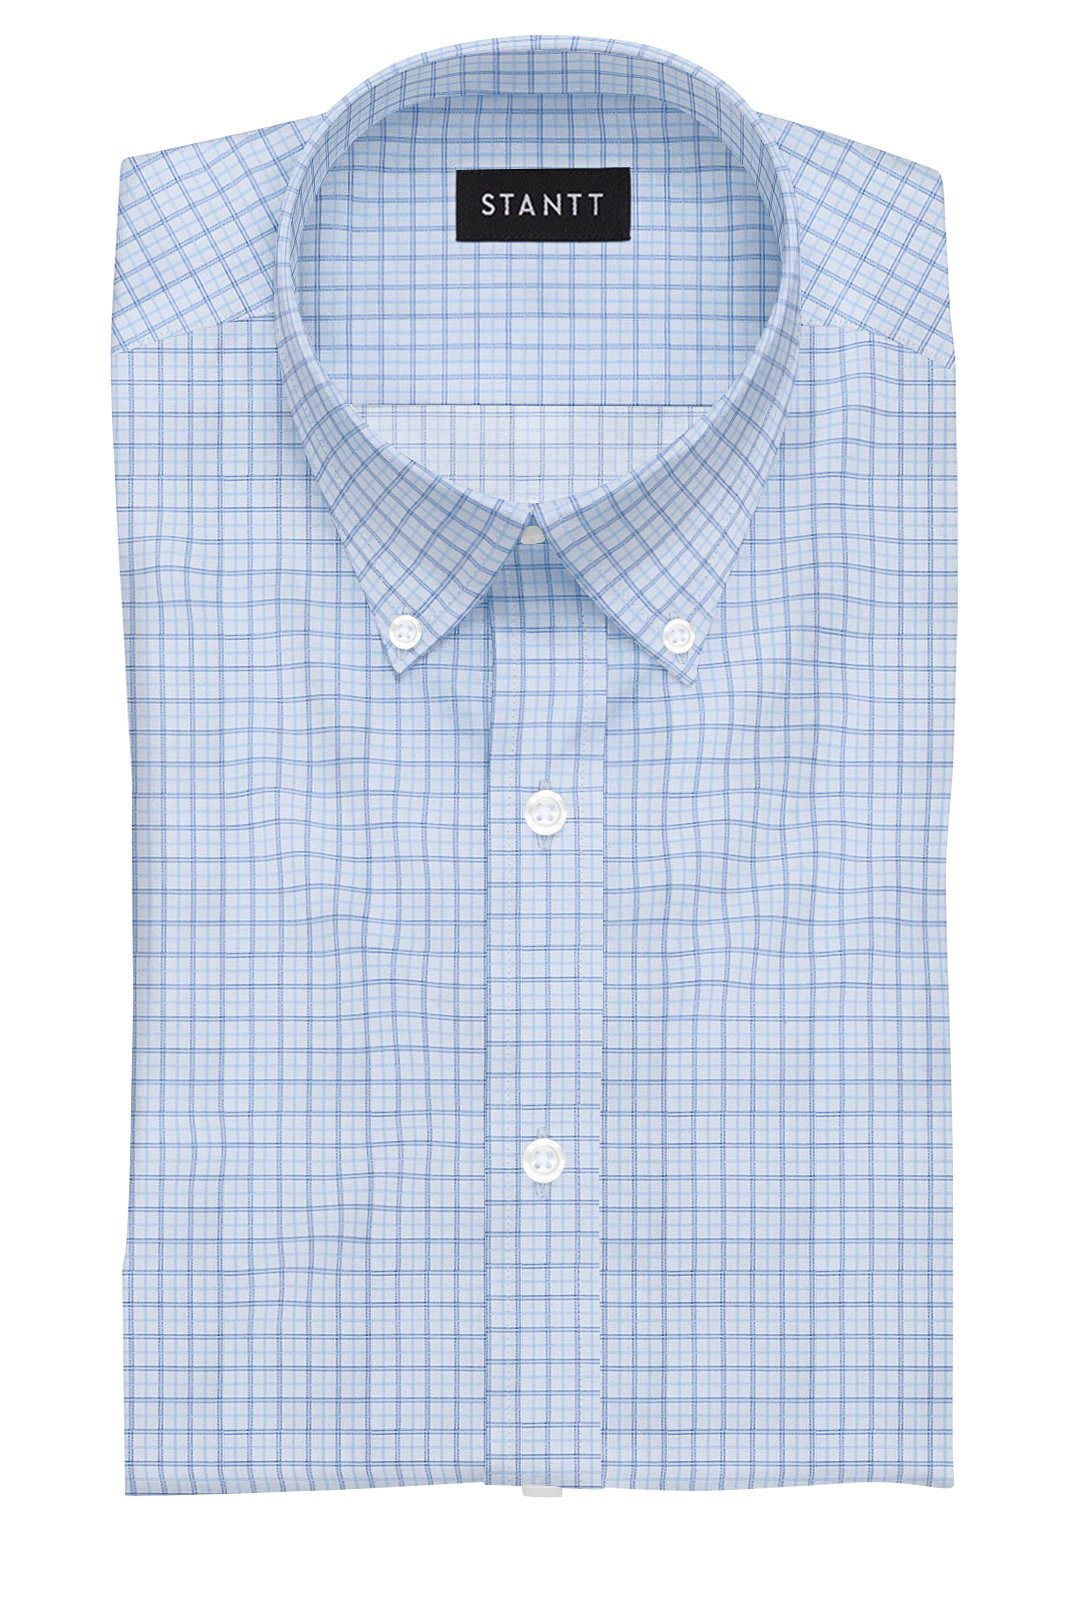 Light Blue Tattersall: Button-Down Collar, Barrel Cuff